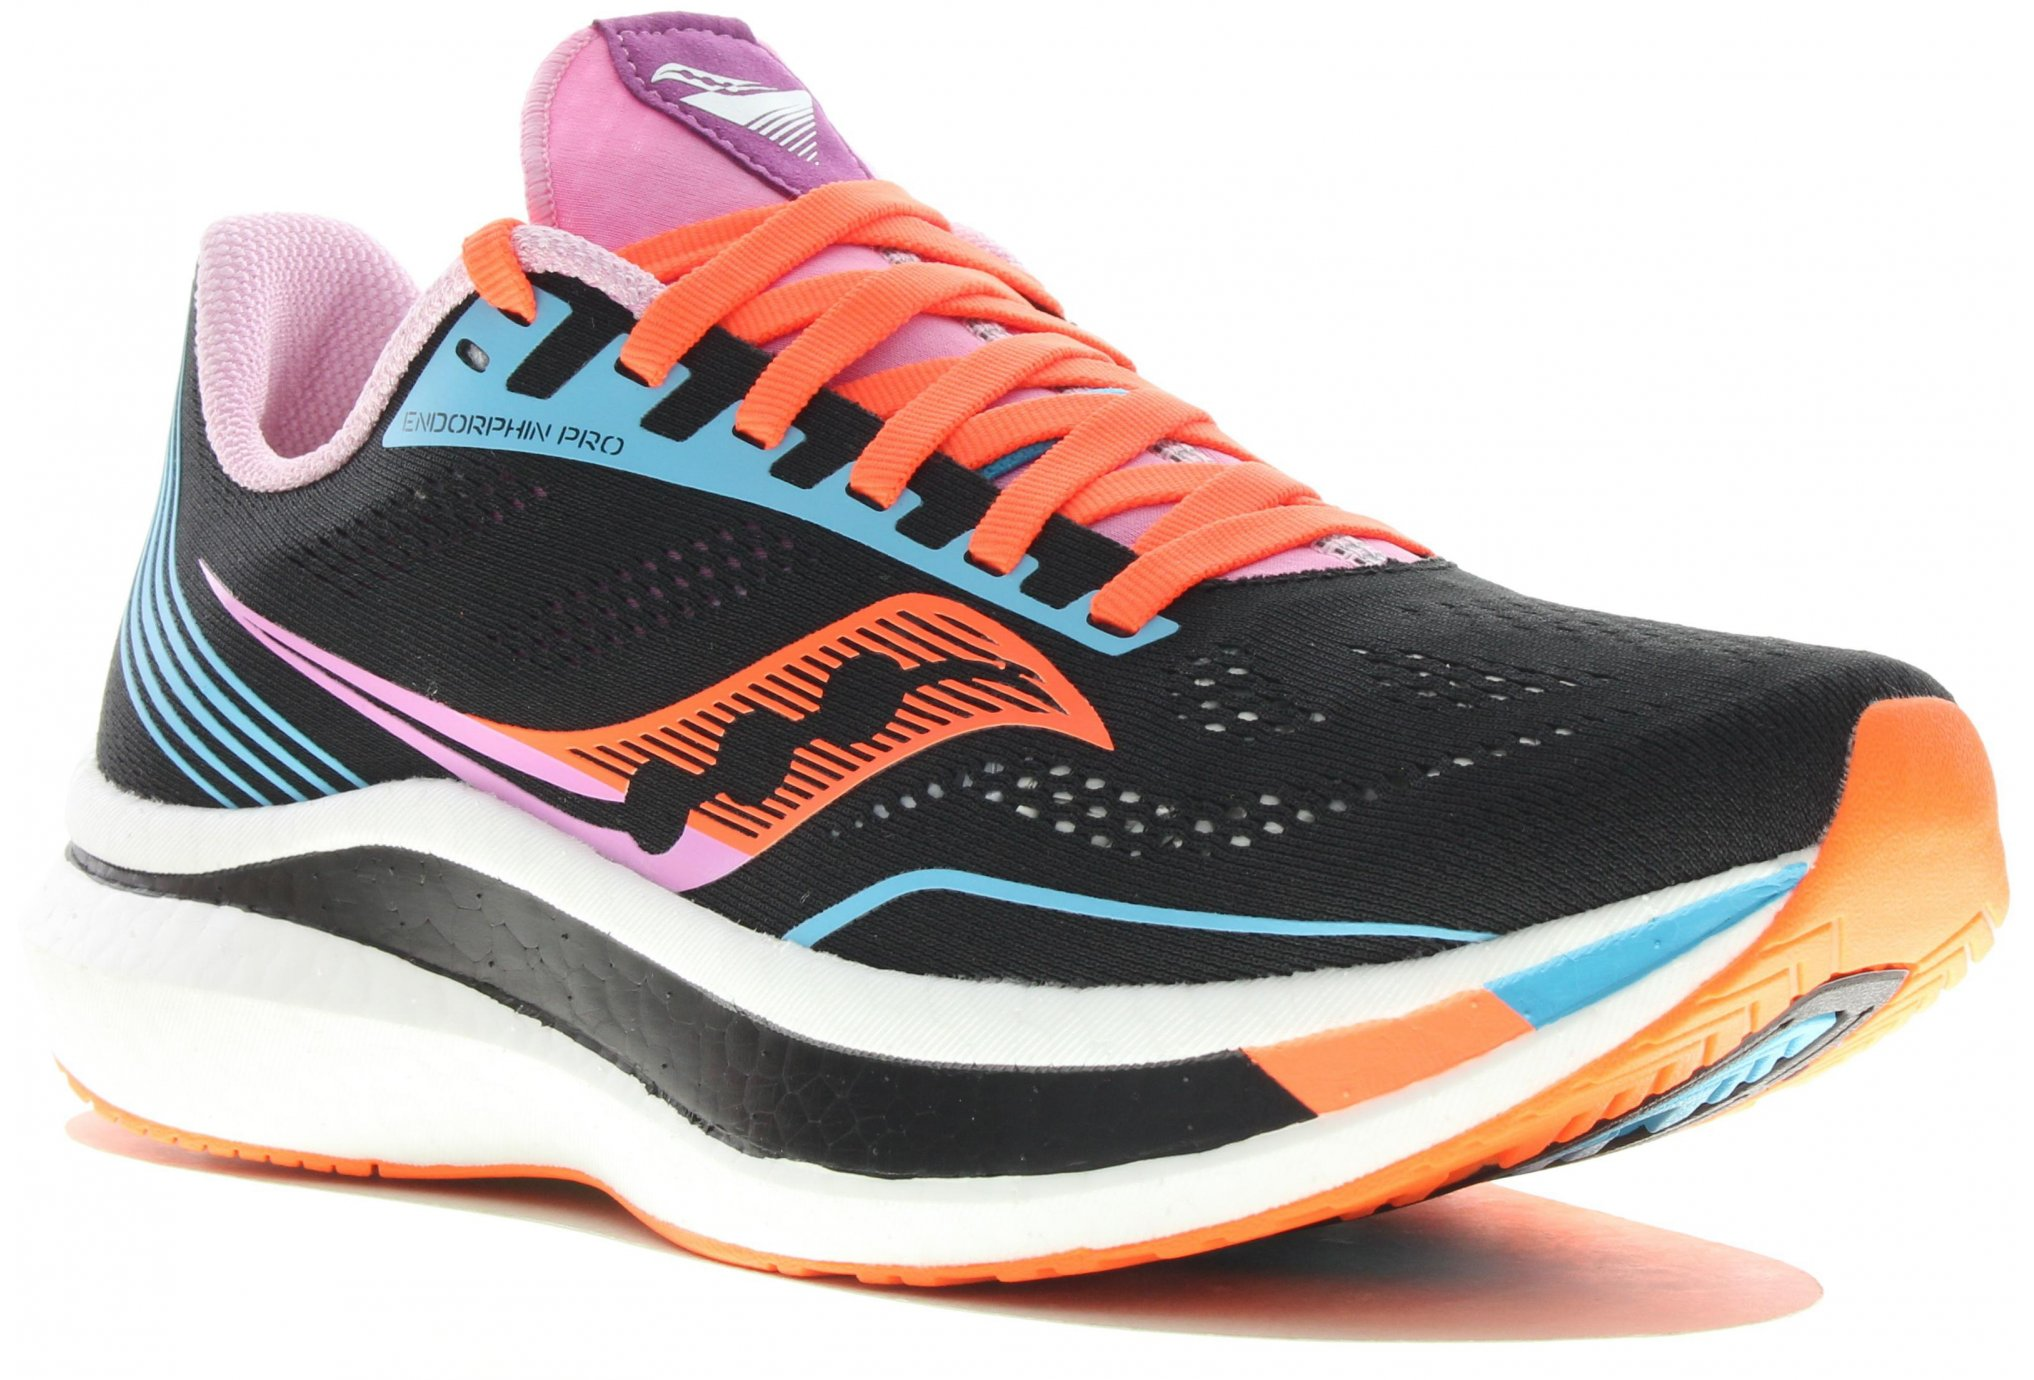 Saucony Endorphin Pro Bright Future Black W Chaussures running femme